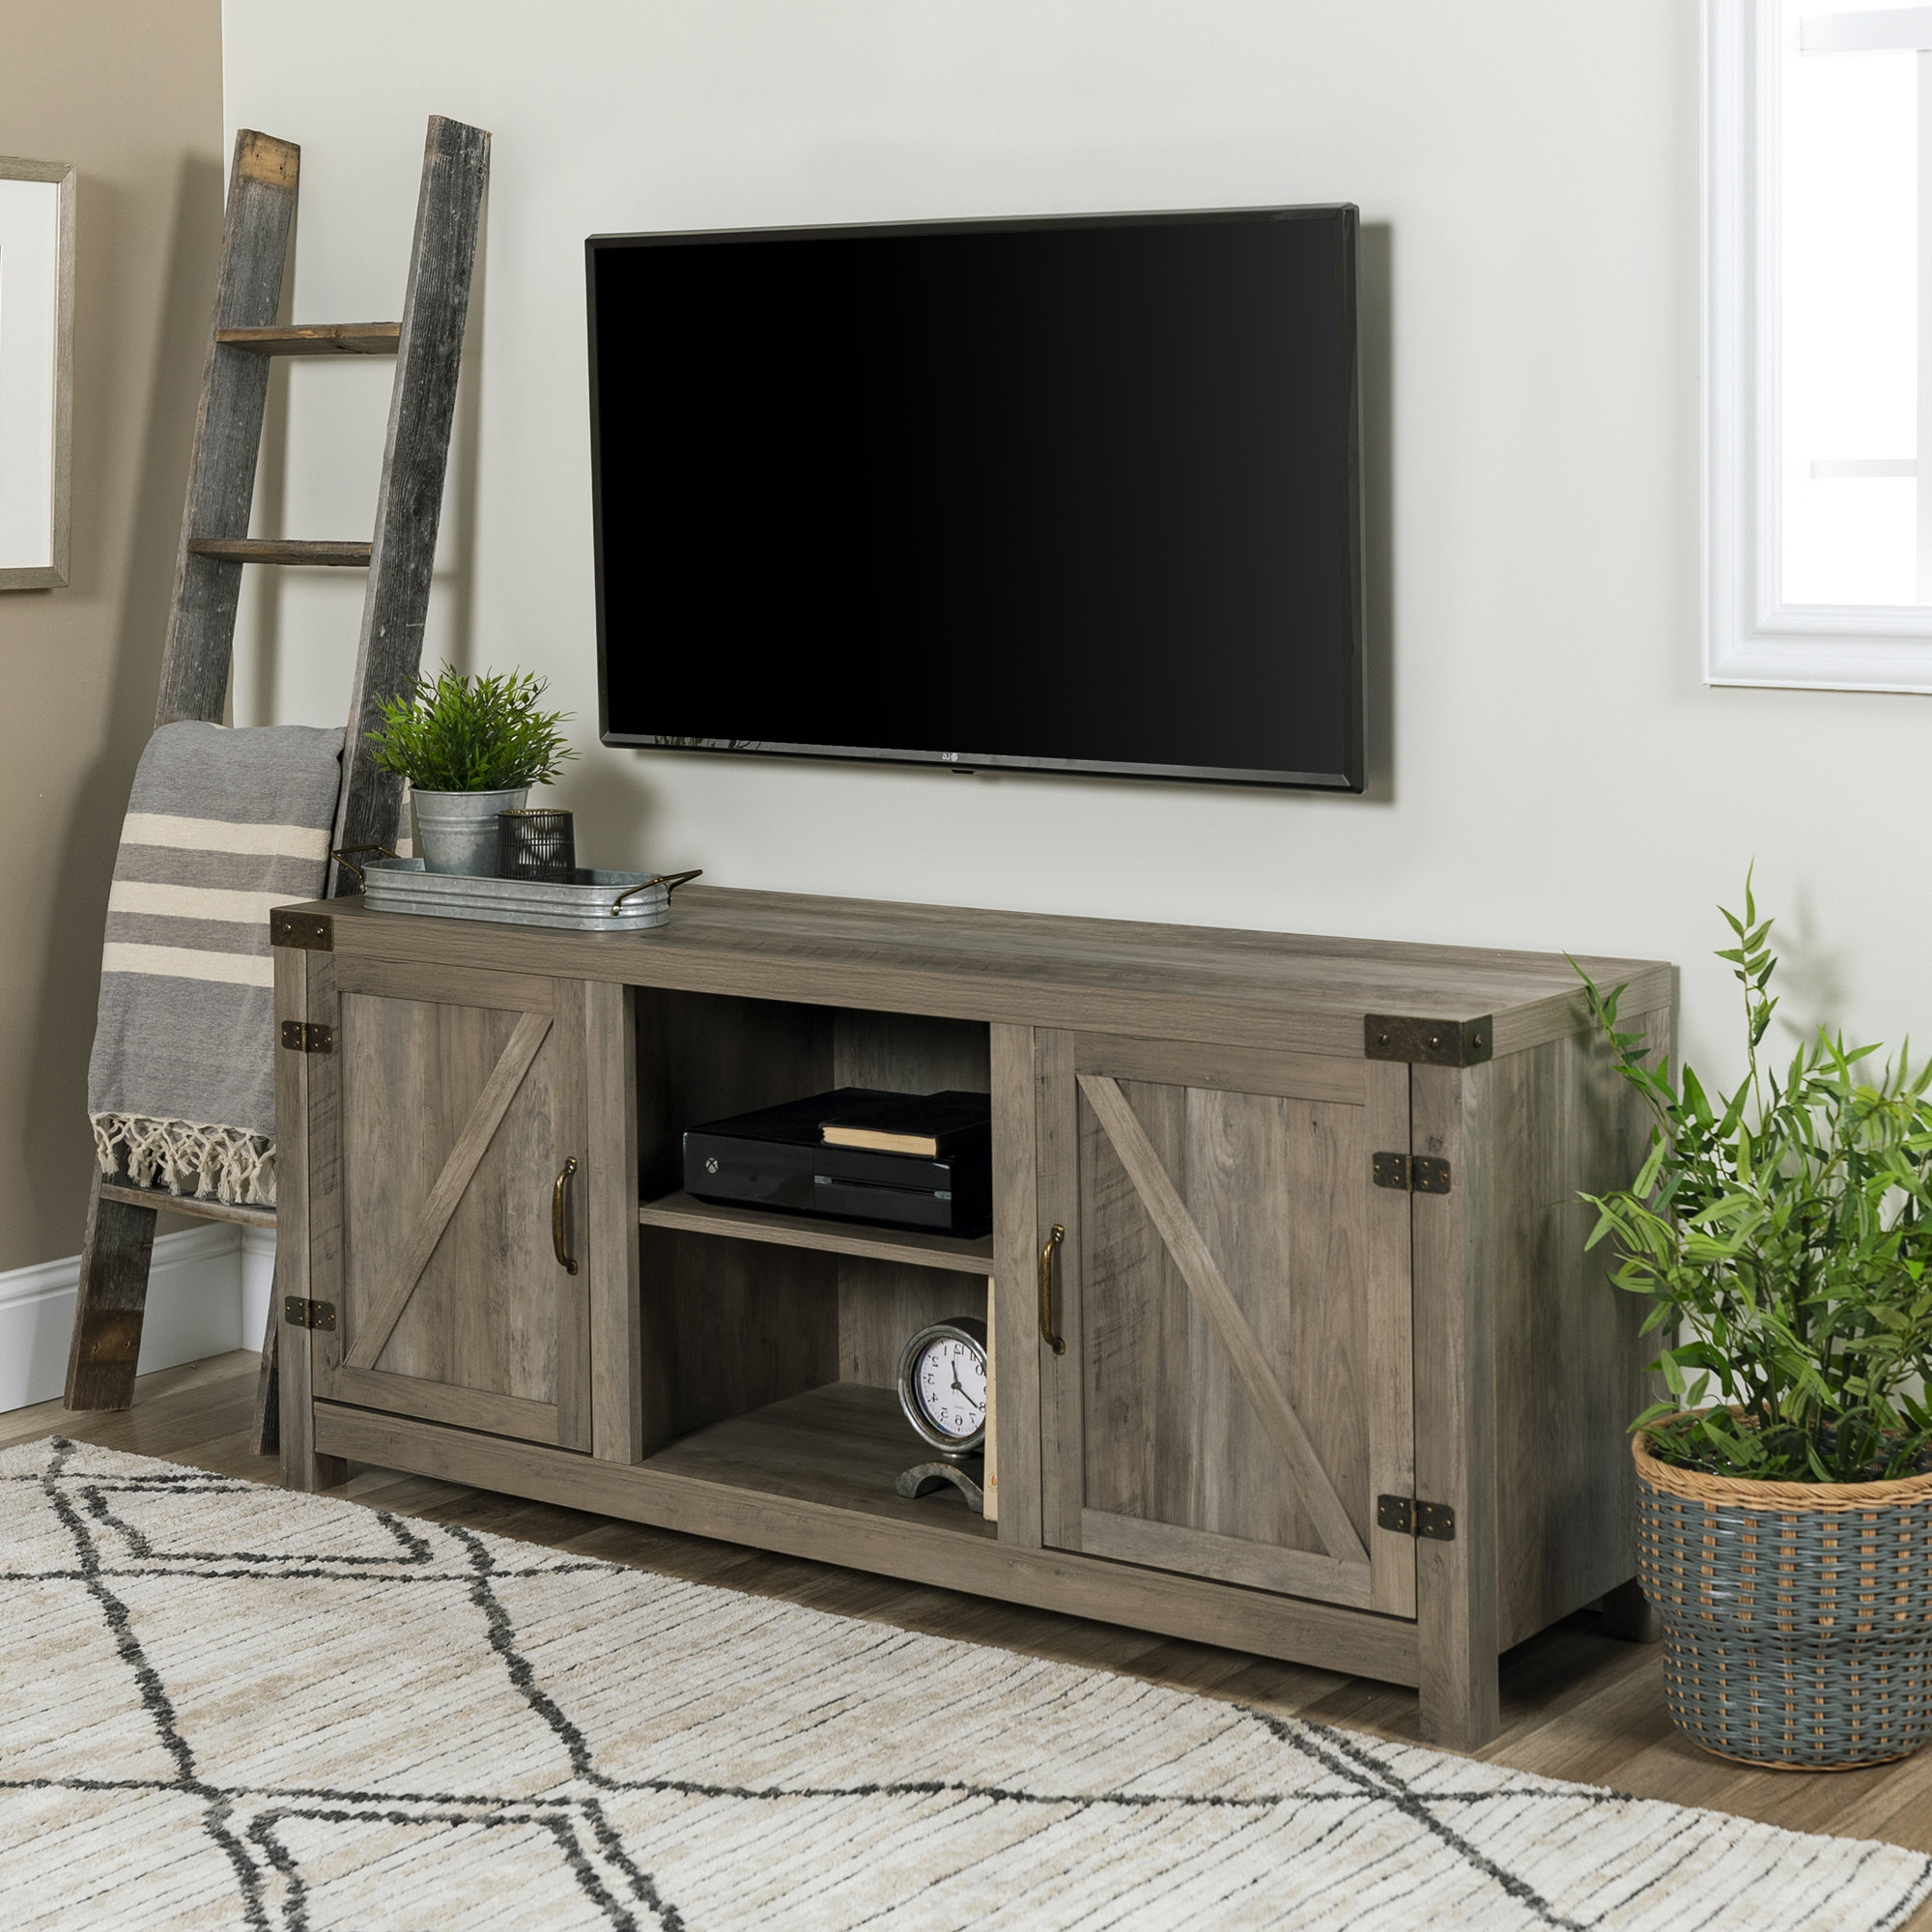 Wayfair Pertaining To Most Recent Laurent 70 Inch Tv Stands (View 16 of 20)